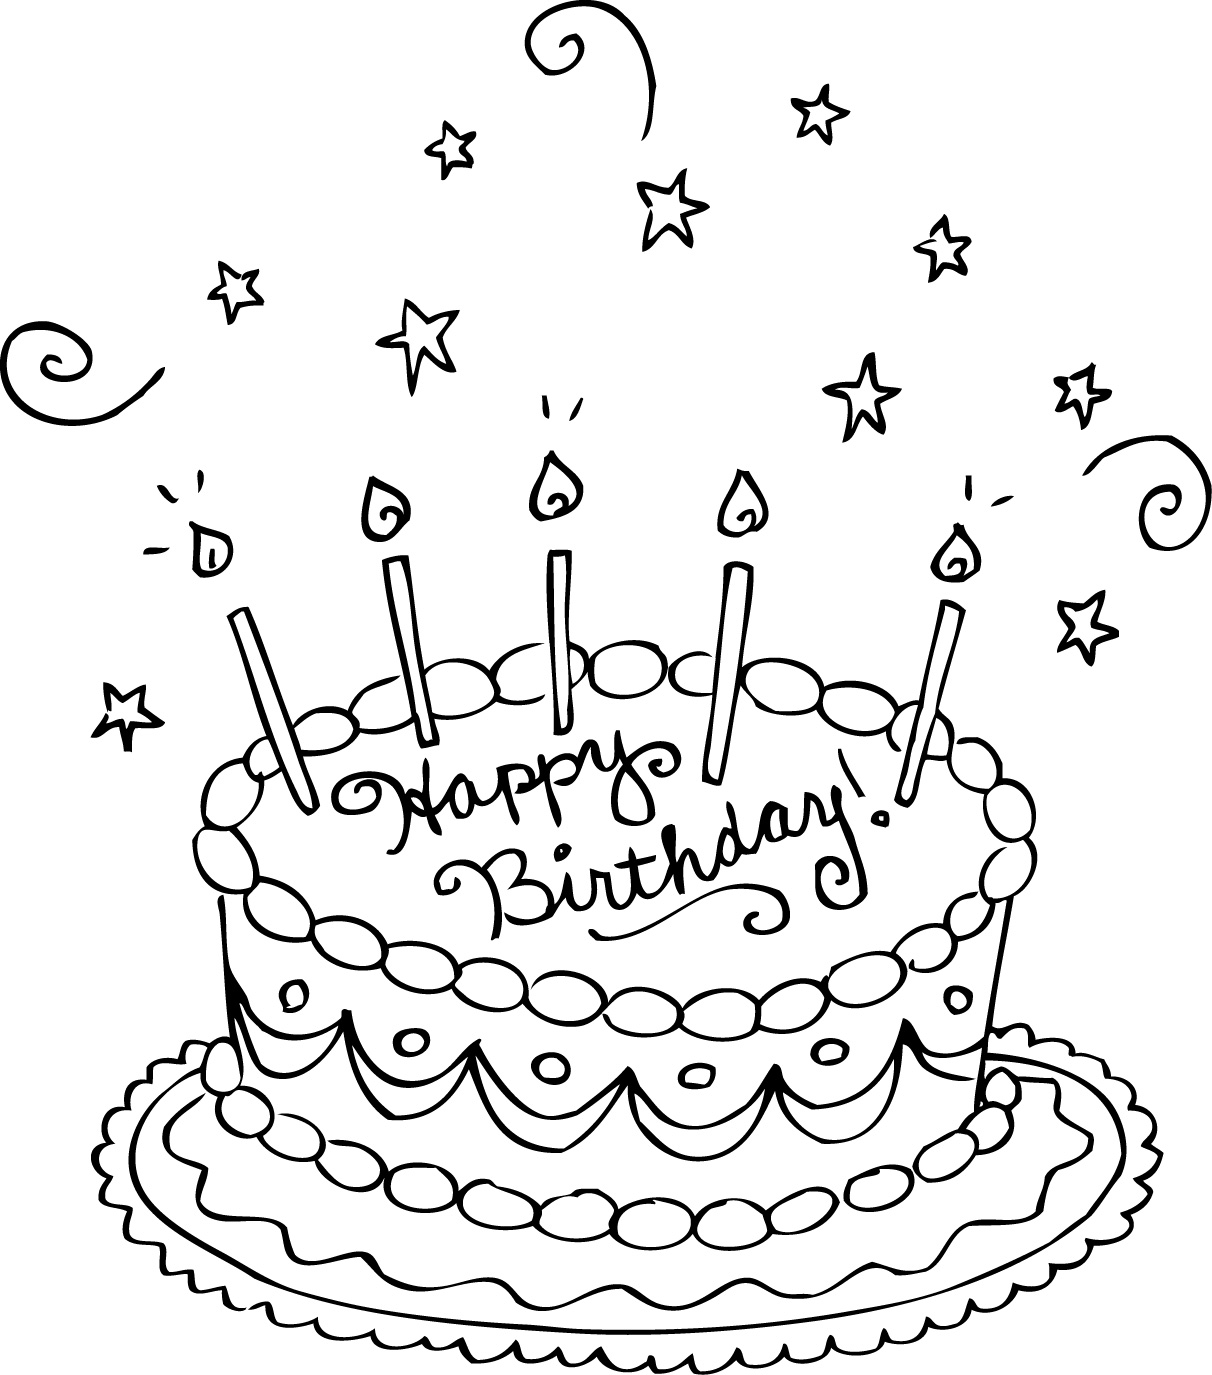 Birthday Cake Coloring Pages To Download And Print For Free